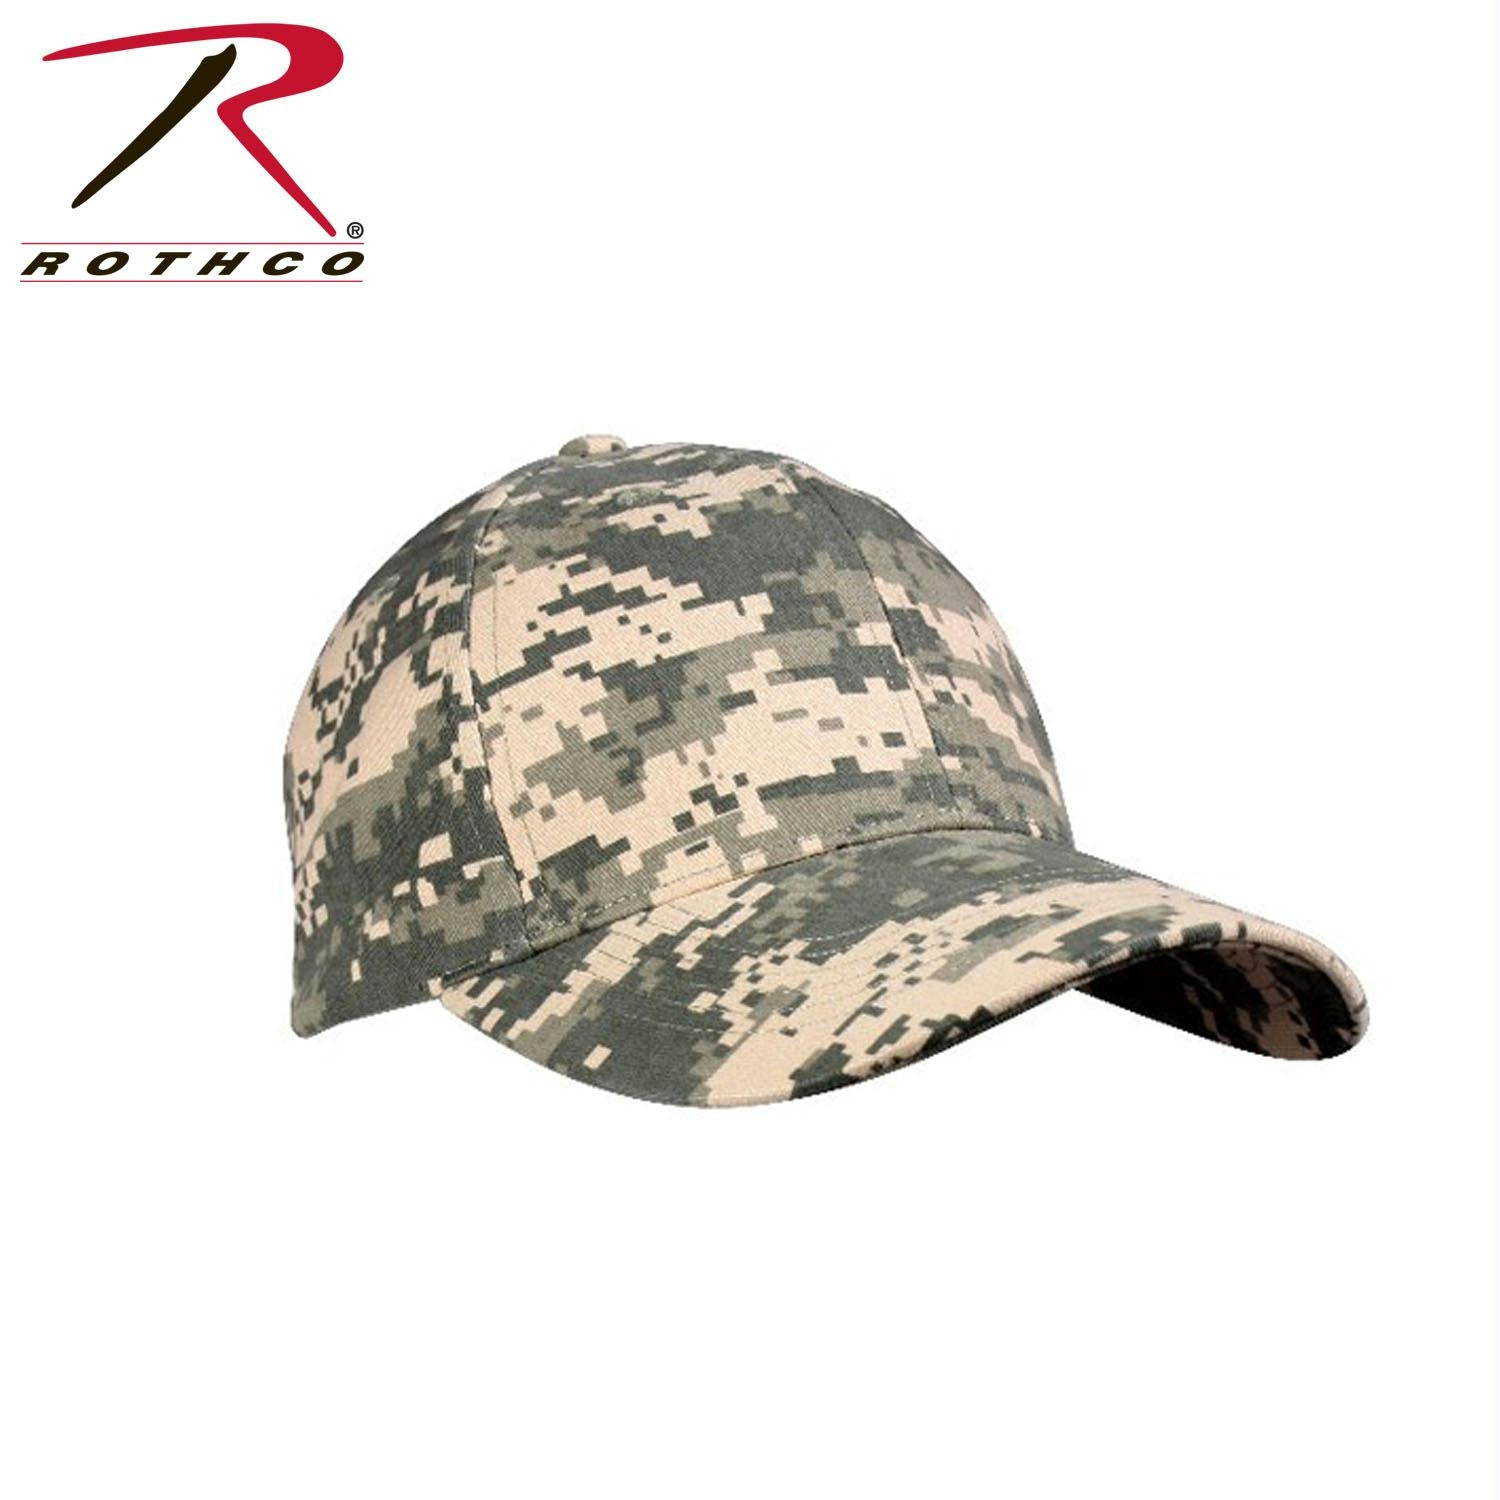 Rothco Supreme Camo Low Profile Cap - ACU Digital Camo / One Size